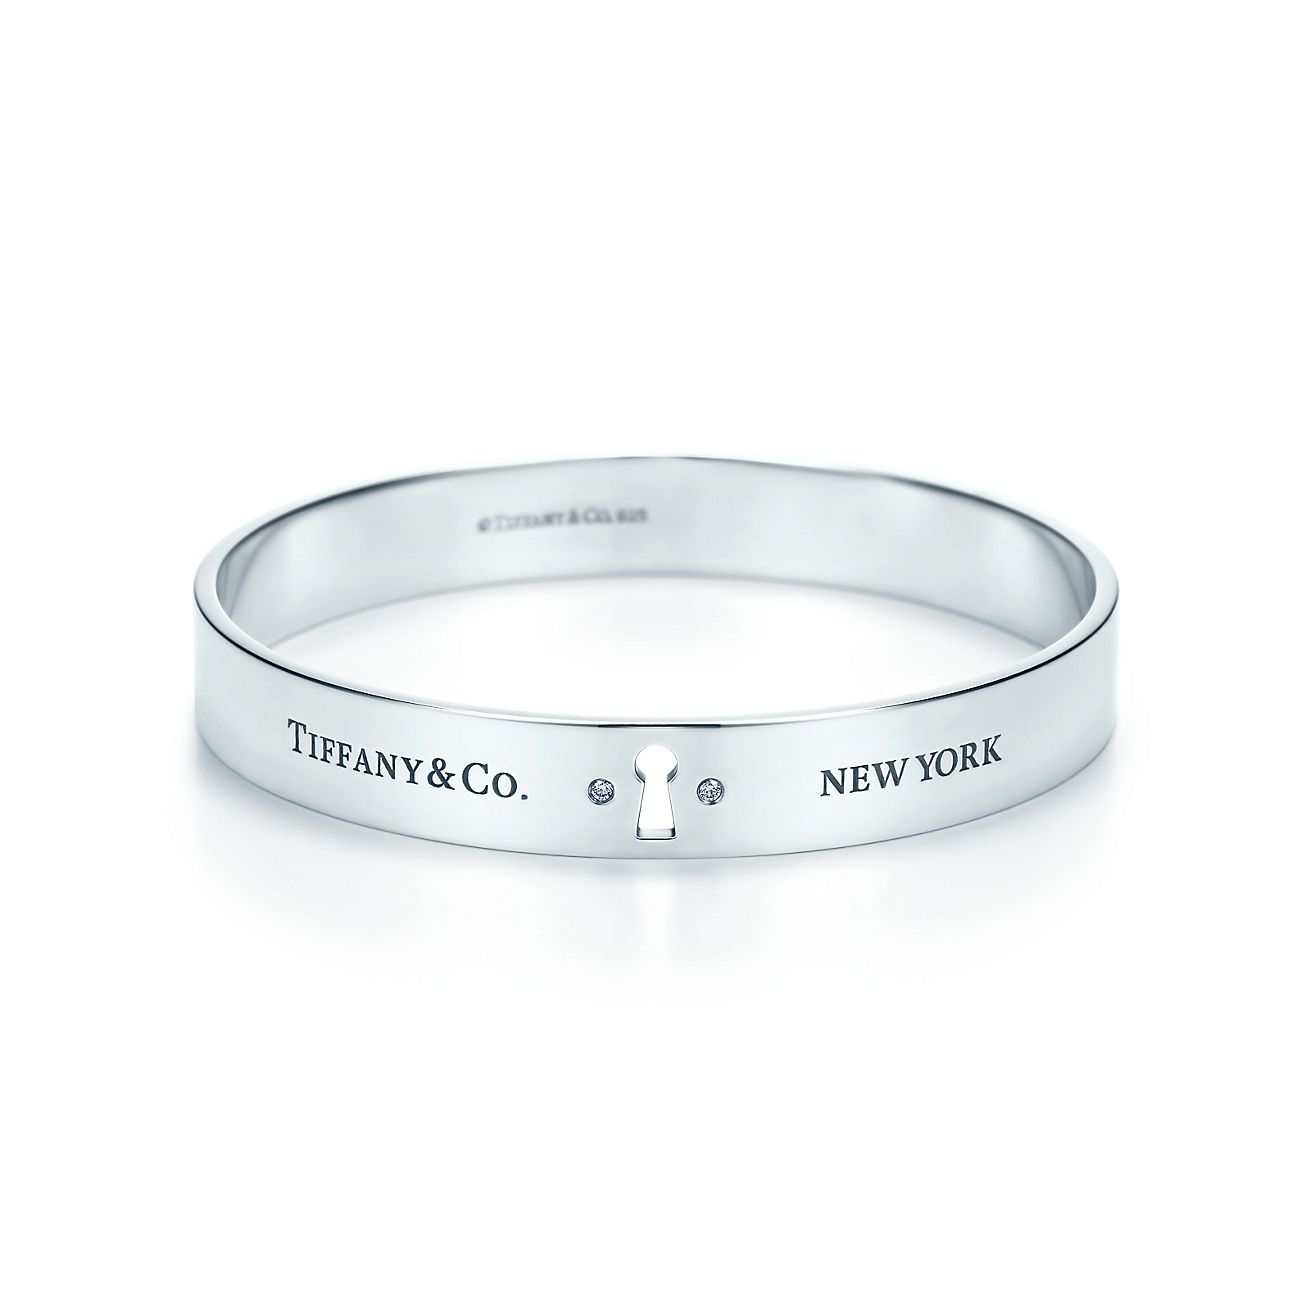 original bangles personalised product luxe by bangle sterling hurleyburley set argent silver